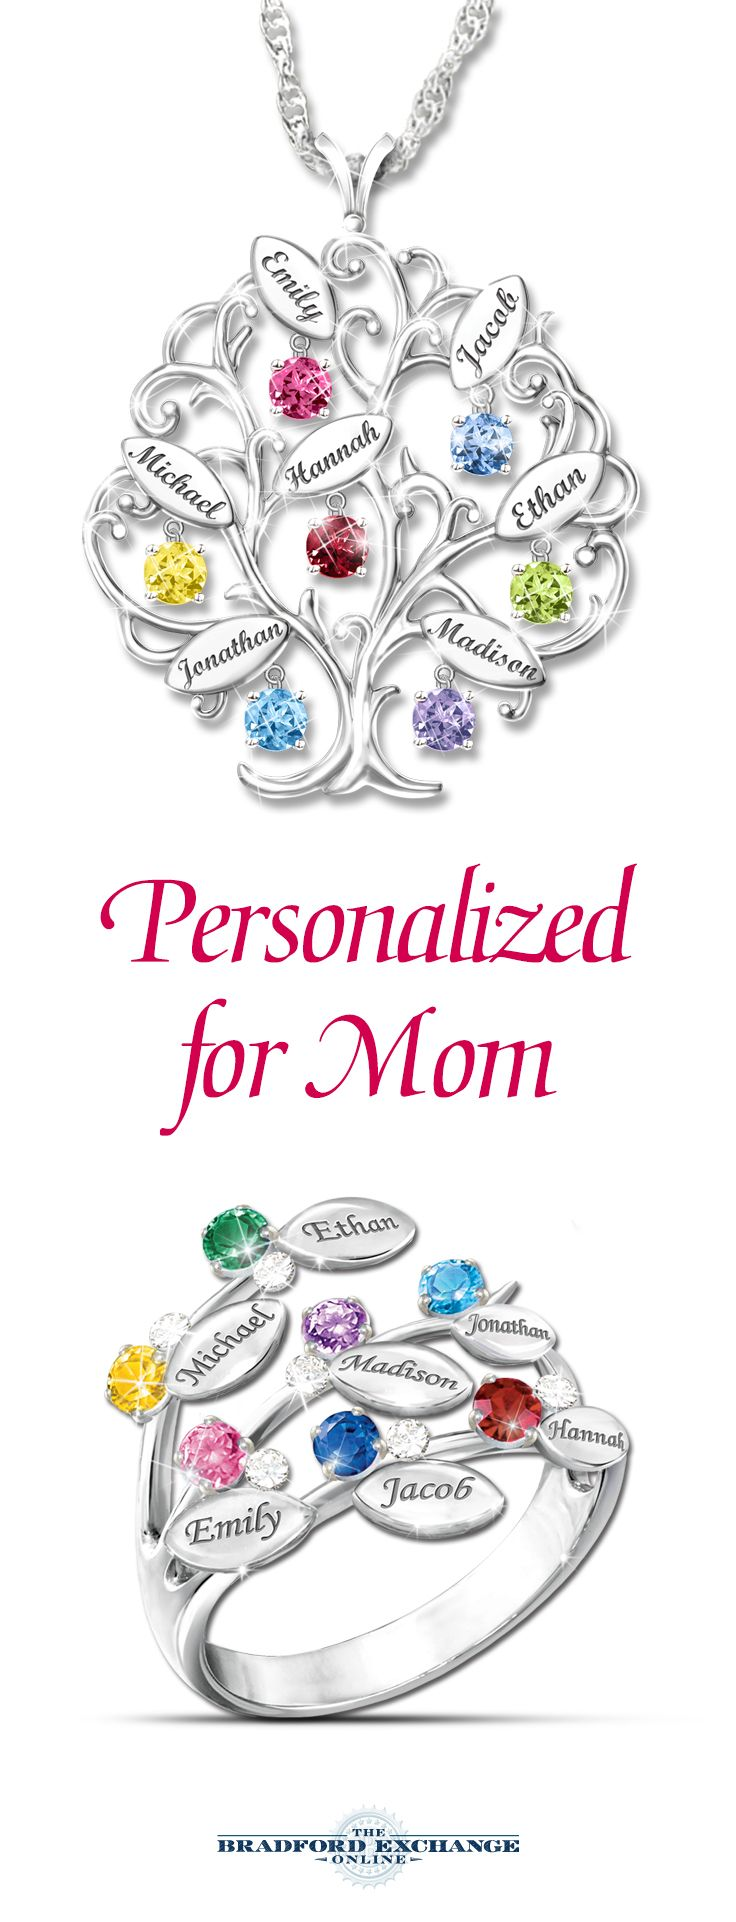 285 best Gifts for Mom images on Pinterest | Mother's day, Gifts ...